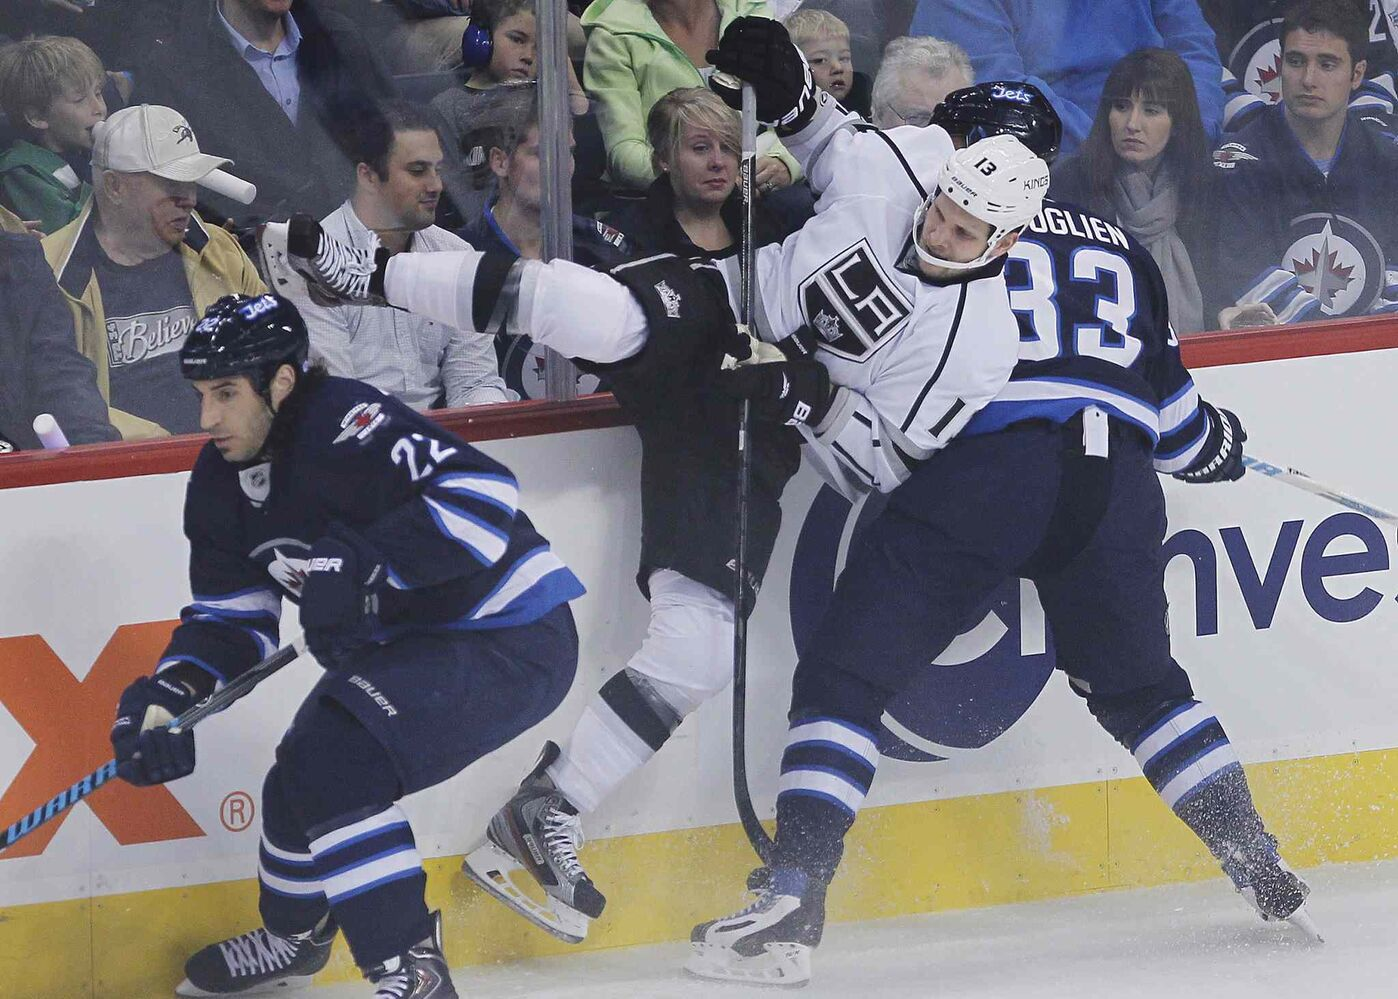 Winnipeg Jets' Dustin Byfuglien (33) takes out Los Angeles Kings' Kyle Clifford (13) as Jets' Chris Thorburn (22) chases down the puck during the first period. (JOHN WOODS / THE CANADIAN PRESS)